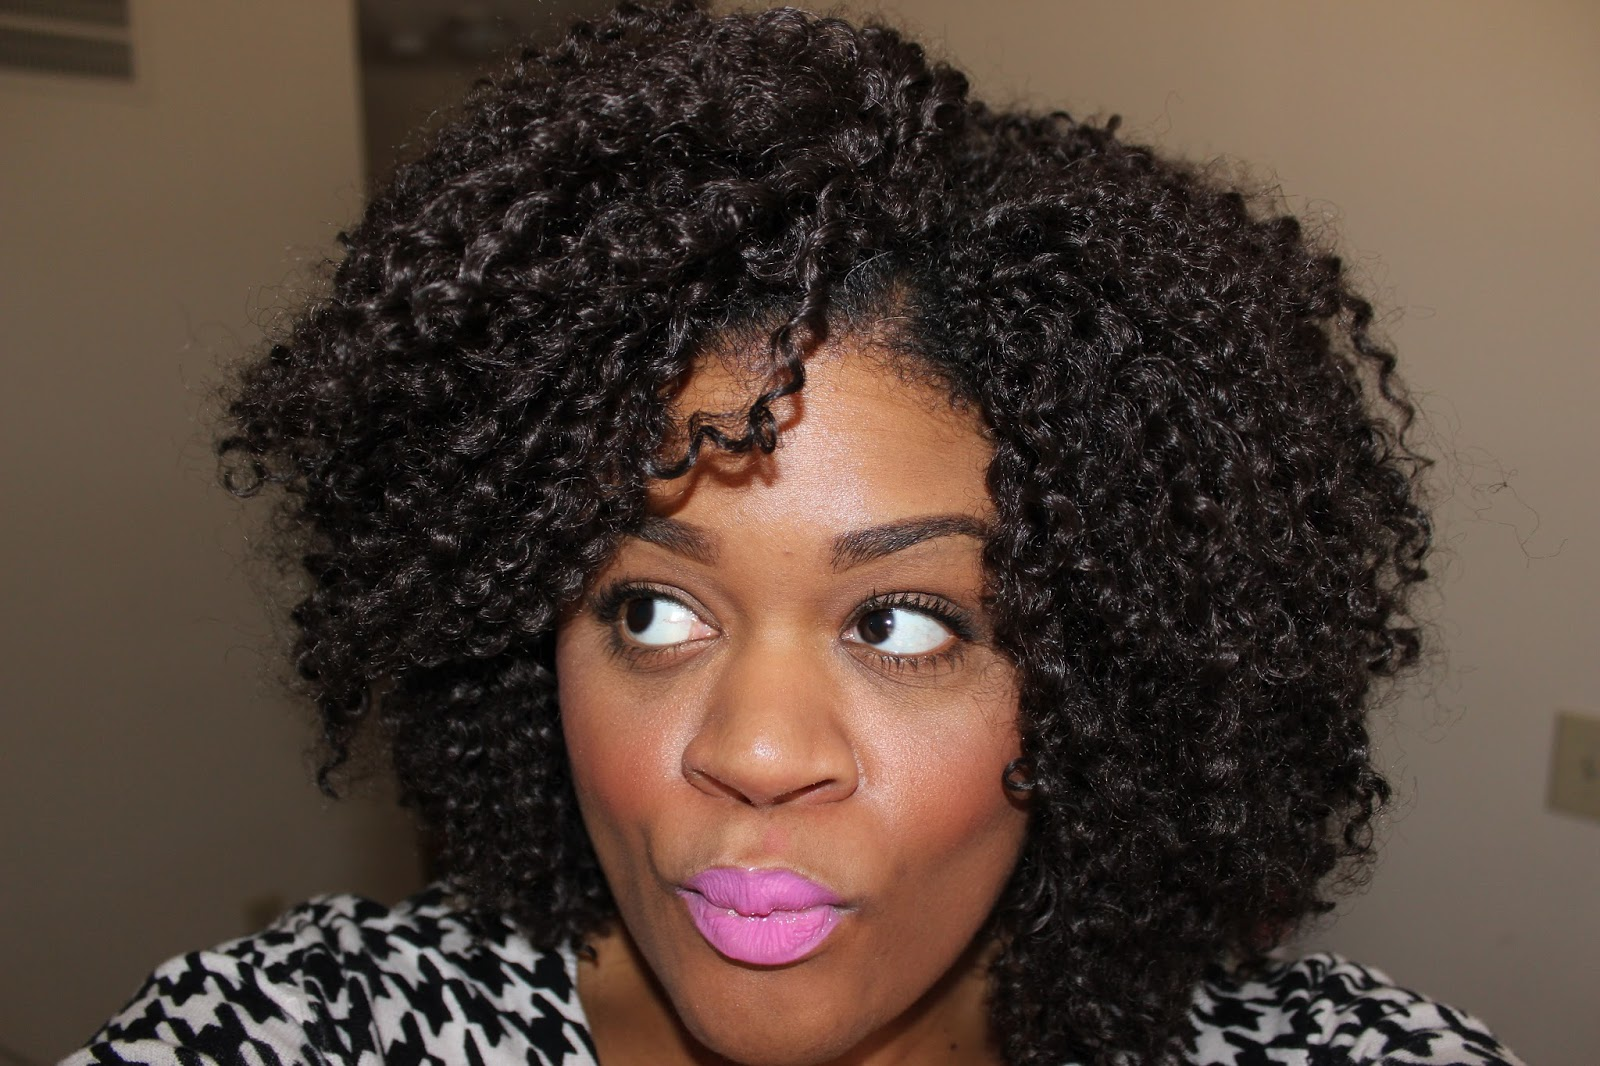 Best Hair For Crochet Braids Natural Look hairstylegalleries.com